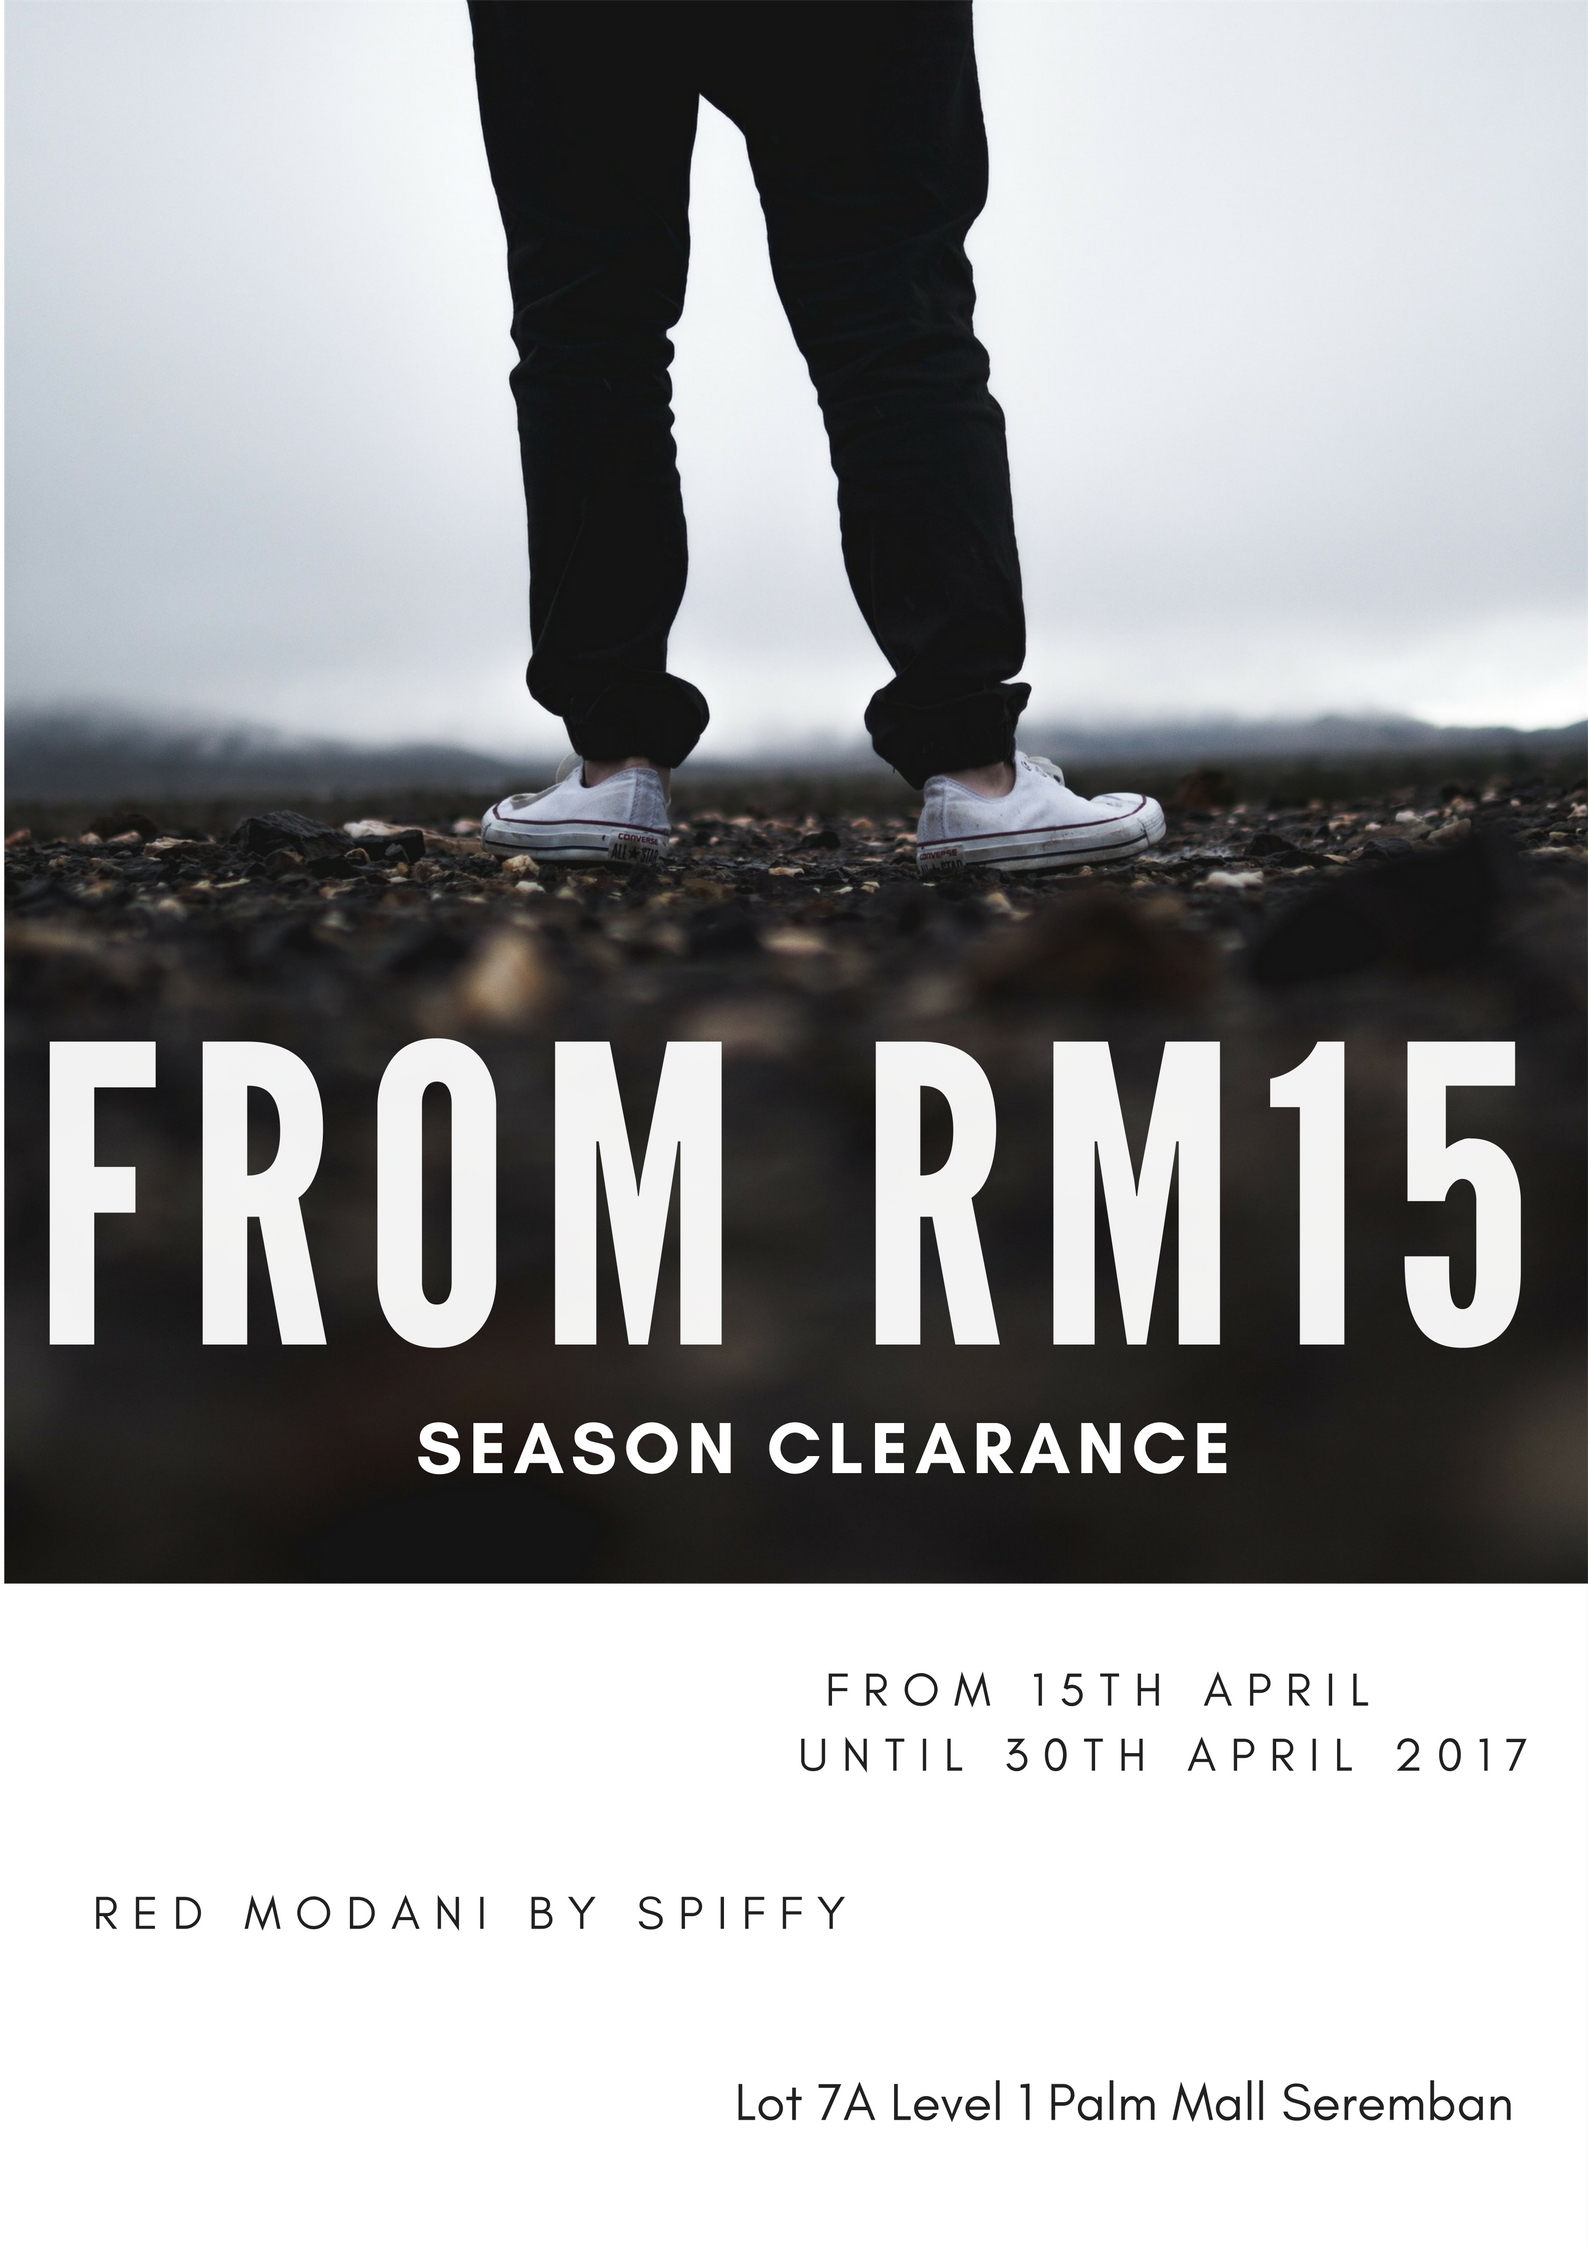 Red Modani Season Clearance